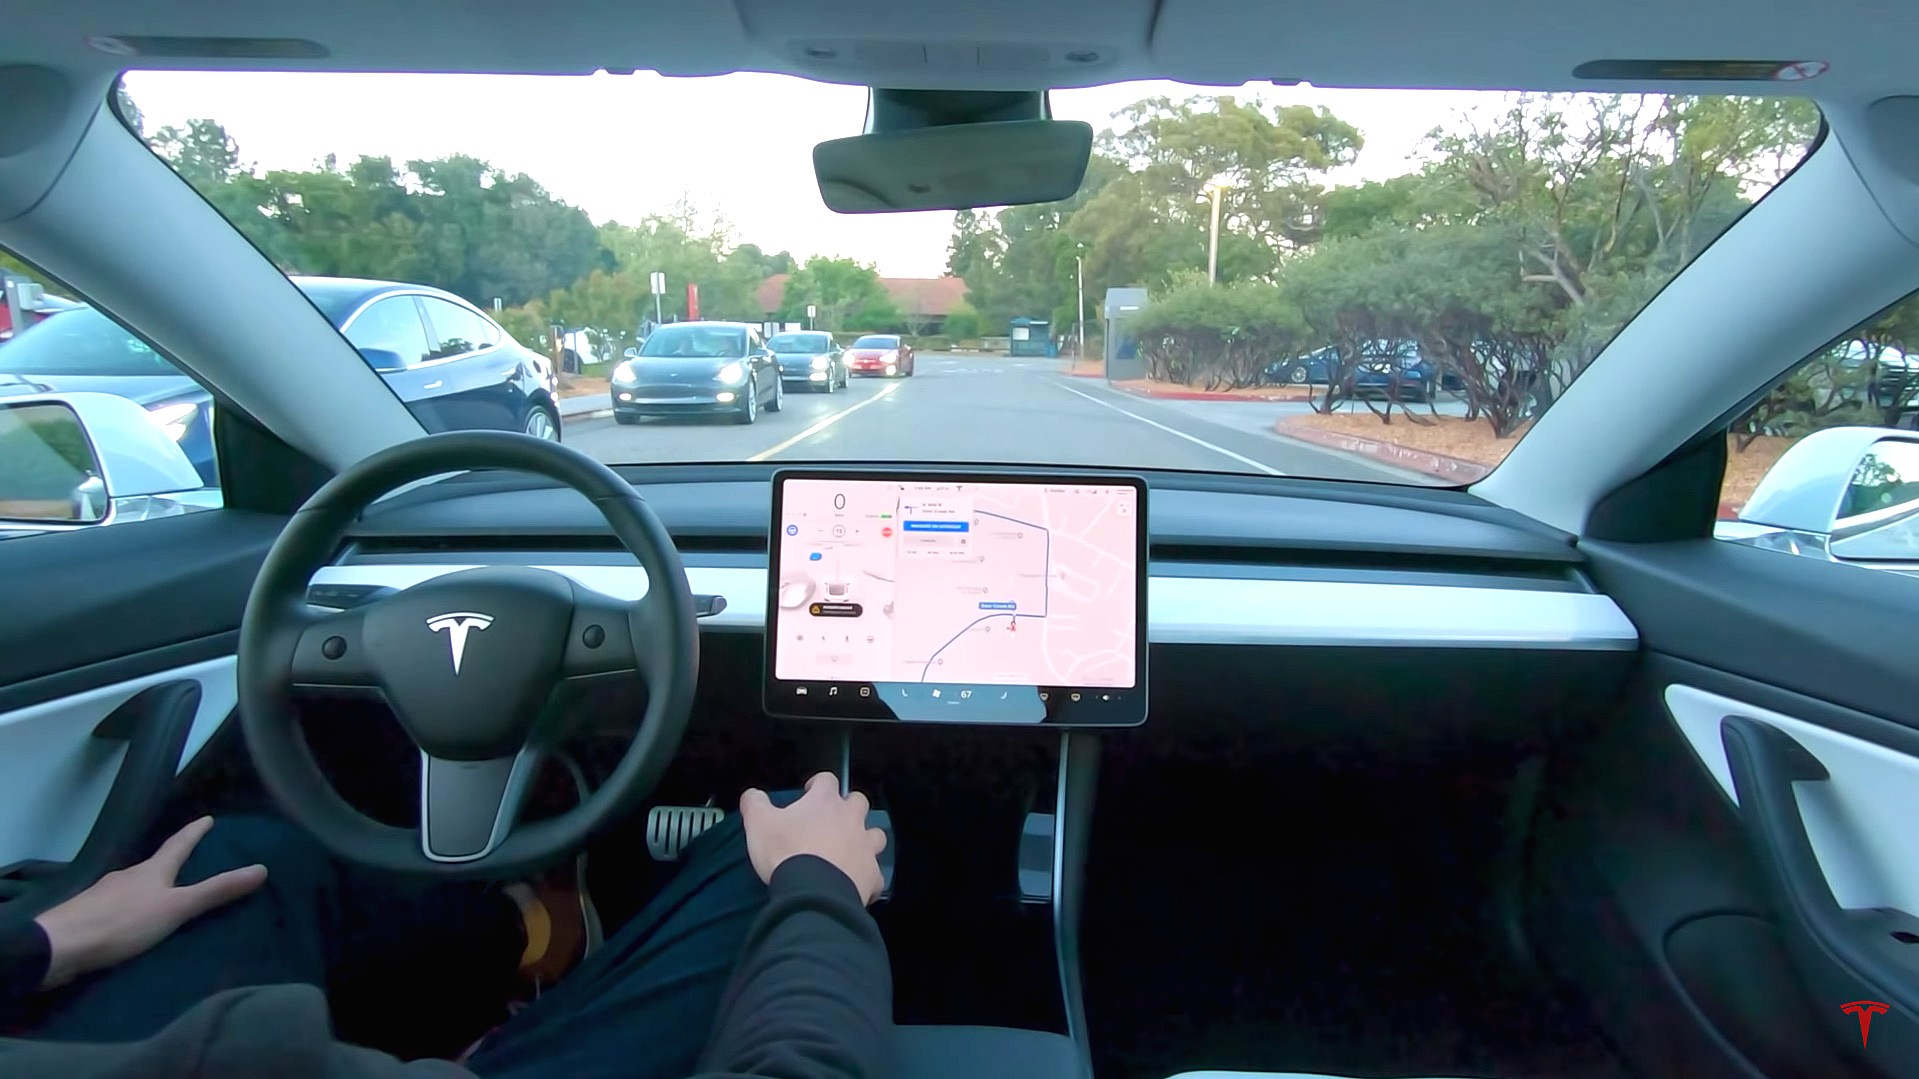 Tesla S In House Full Self Driving Chip Puts Tsla 4 Years Ahead Of Compeion Yst